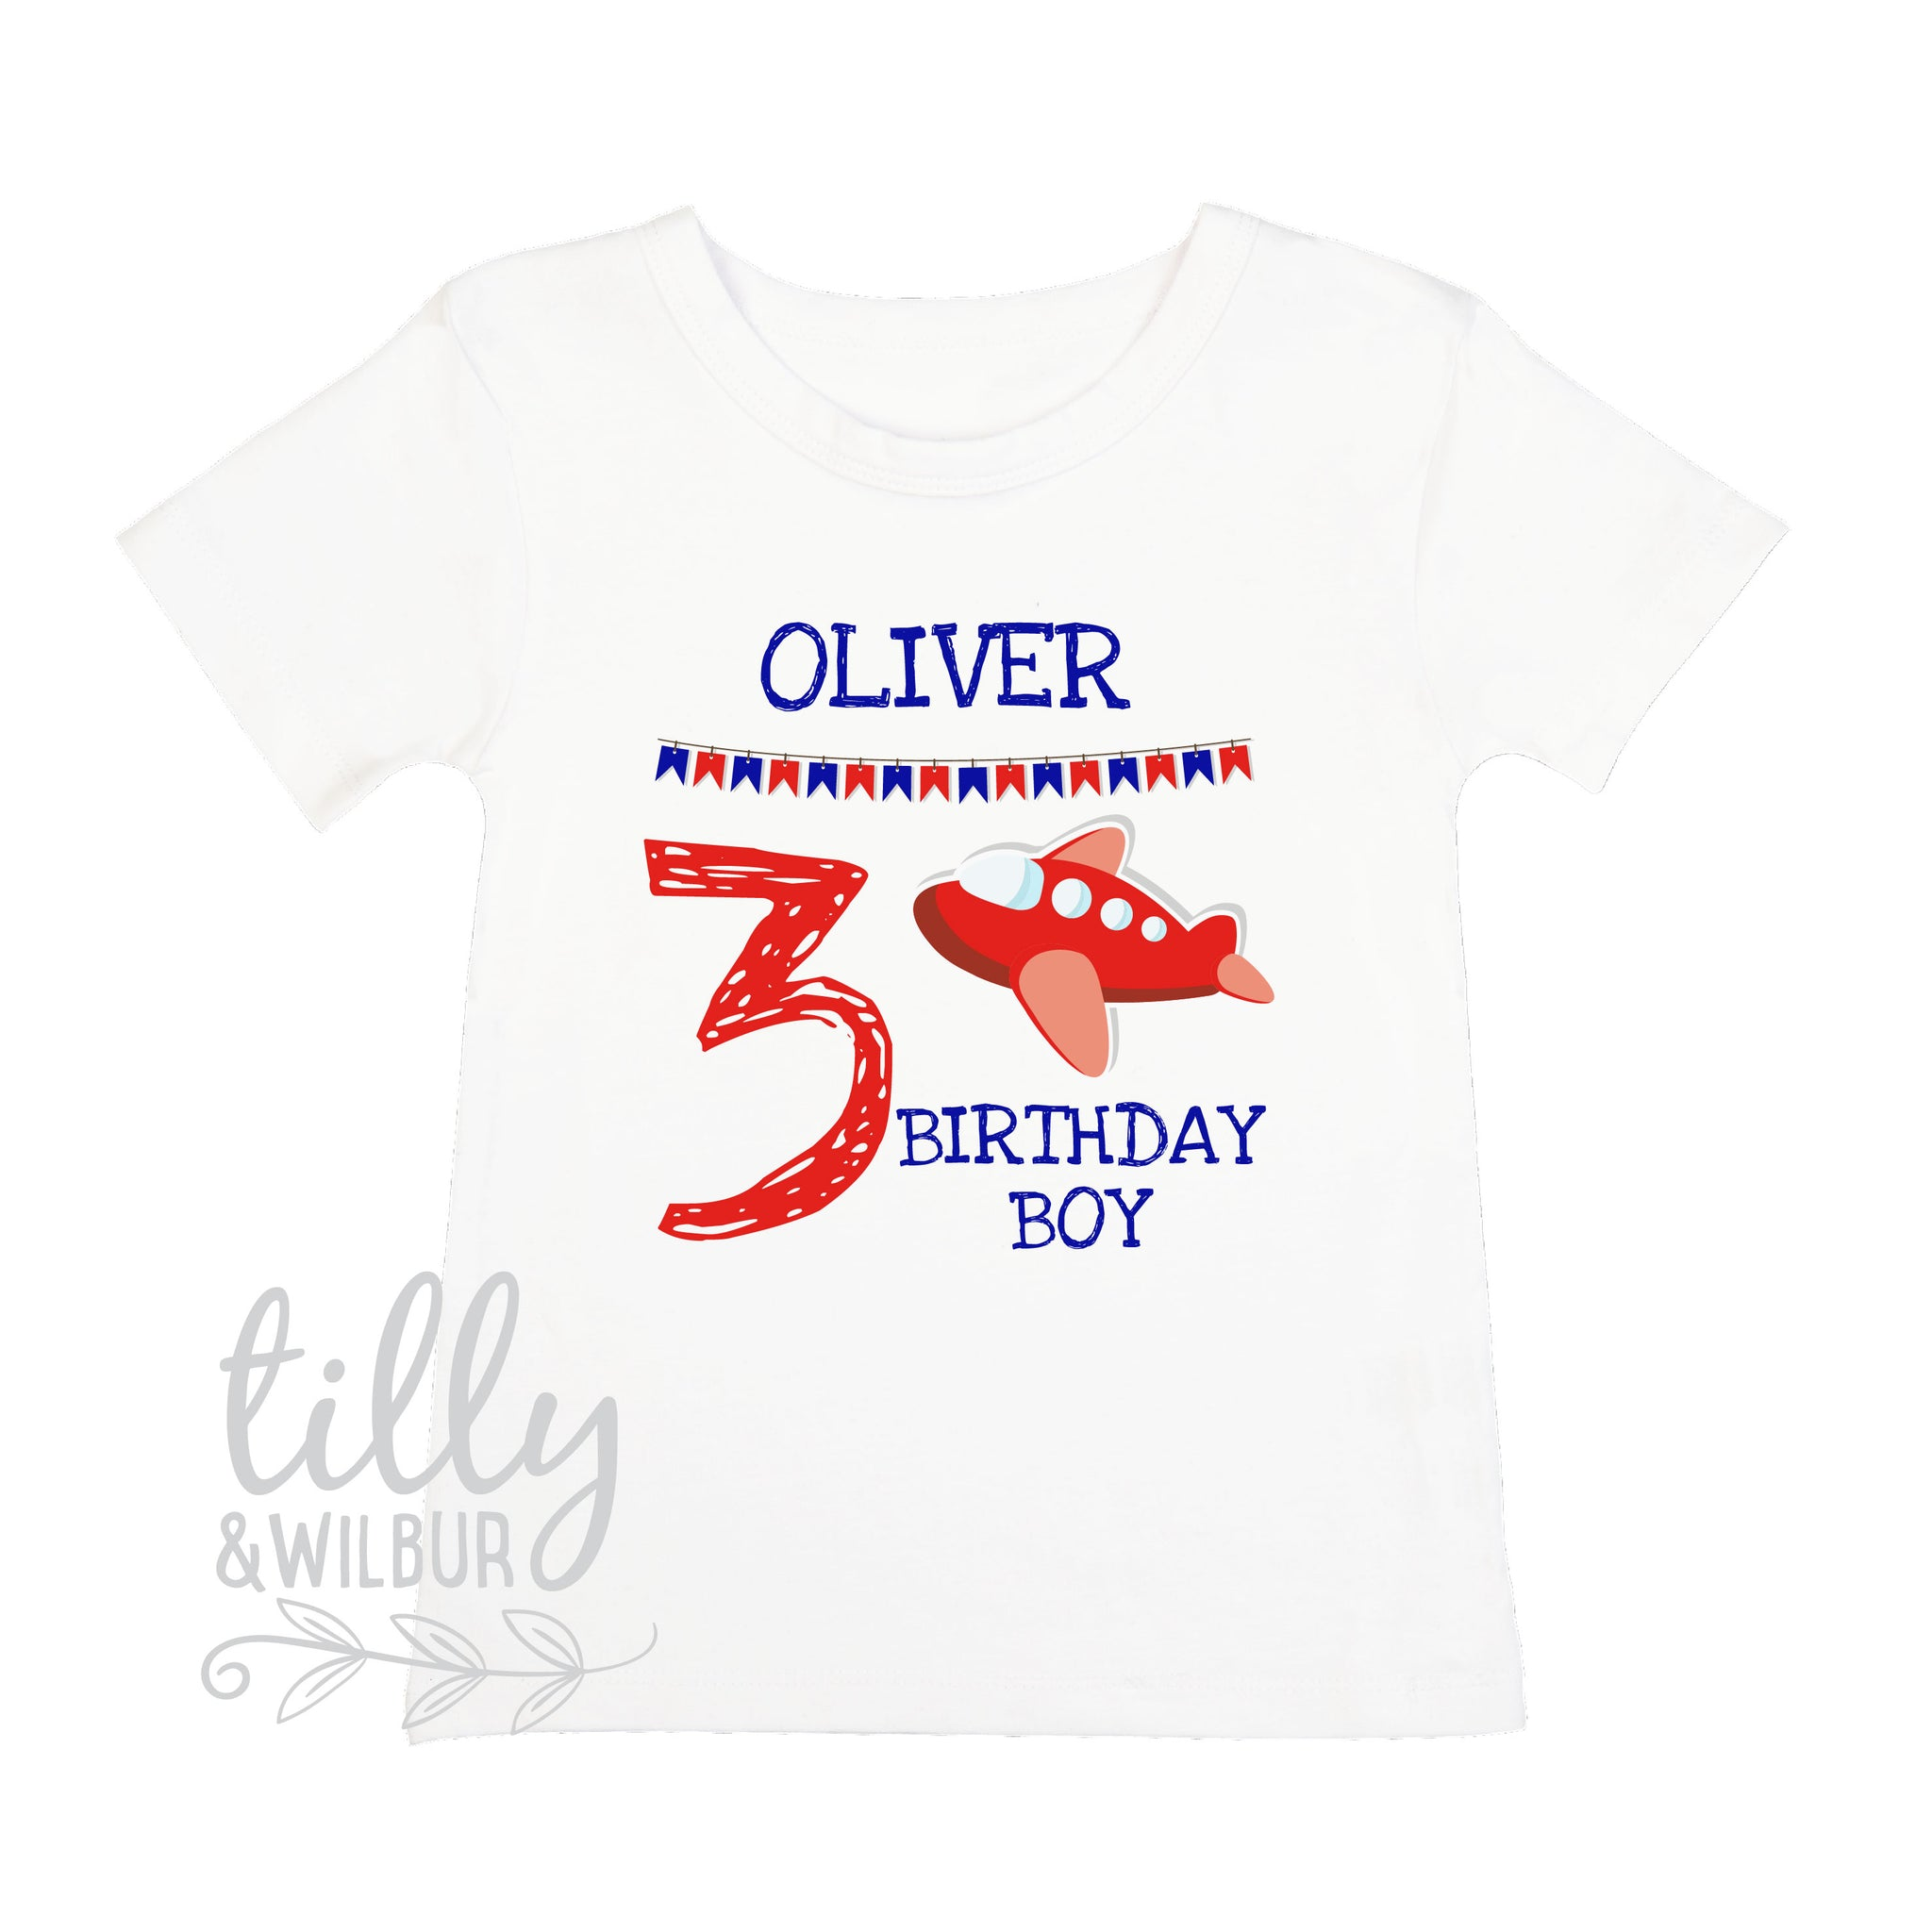 3rd Birthday T Shirt With Plane